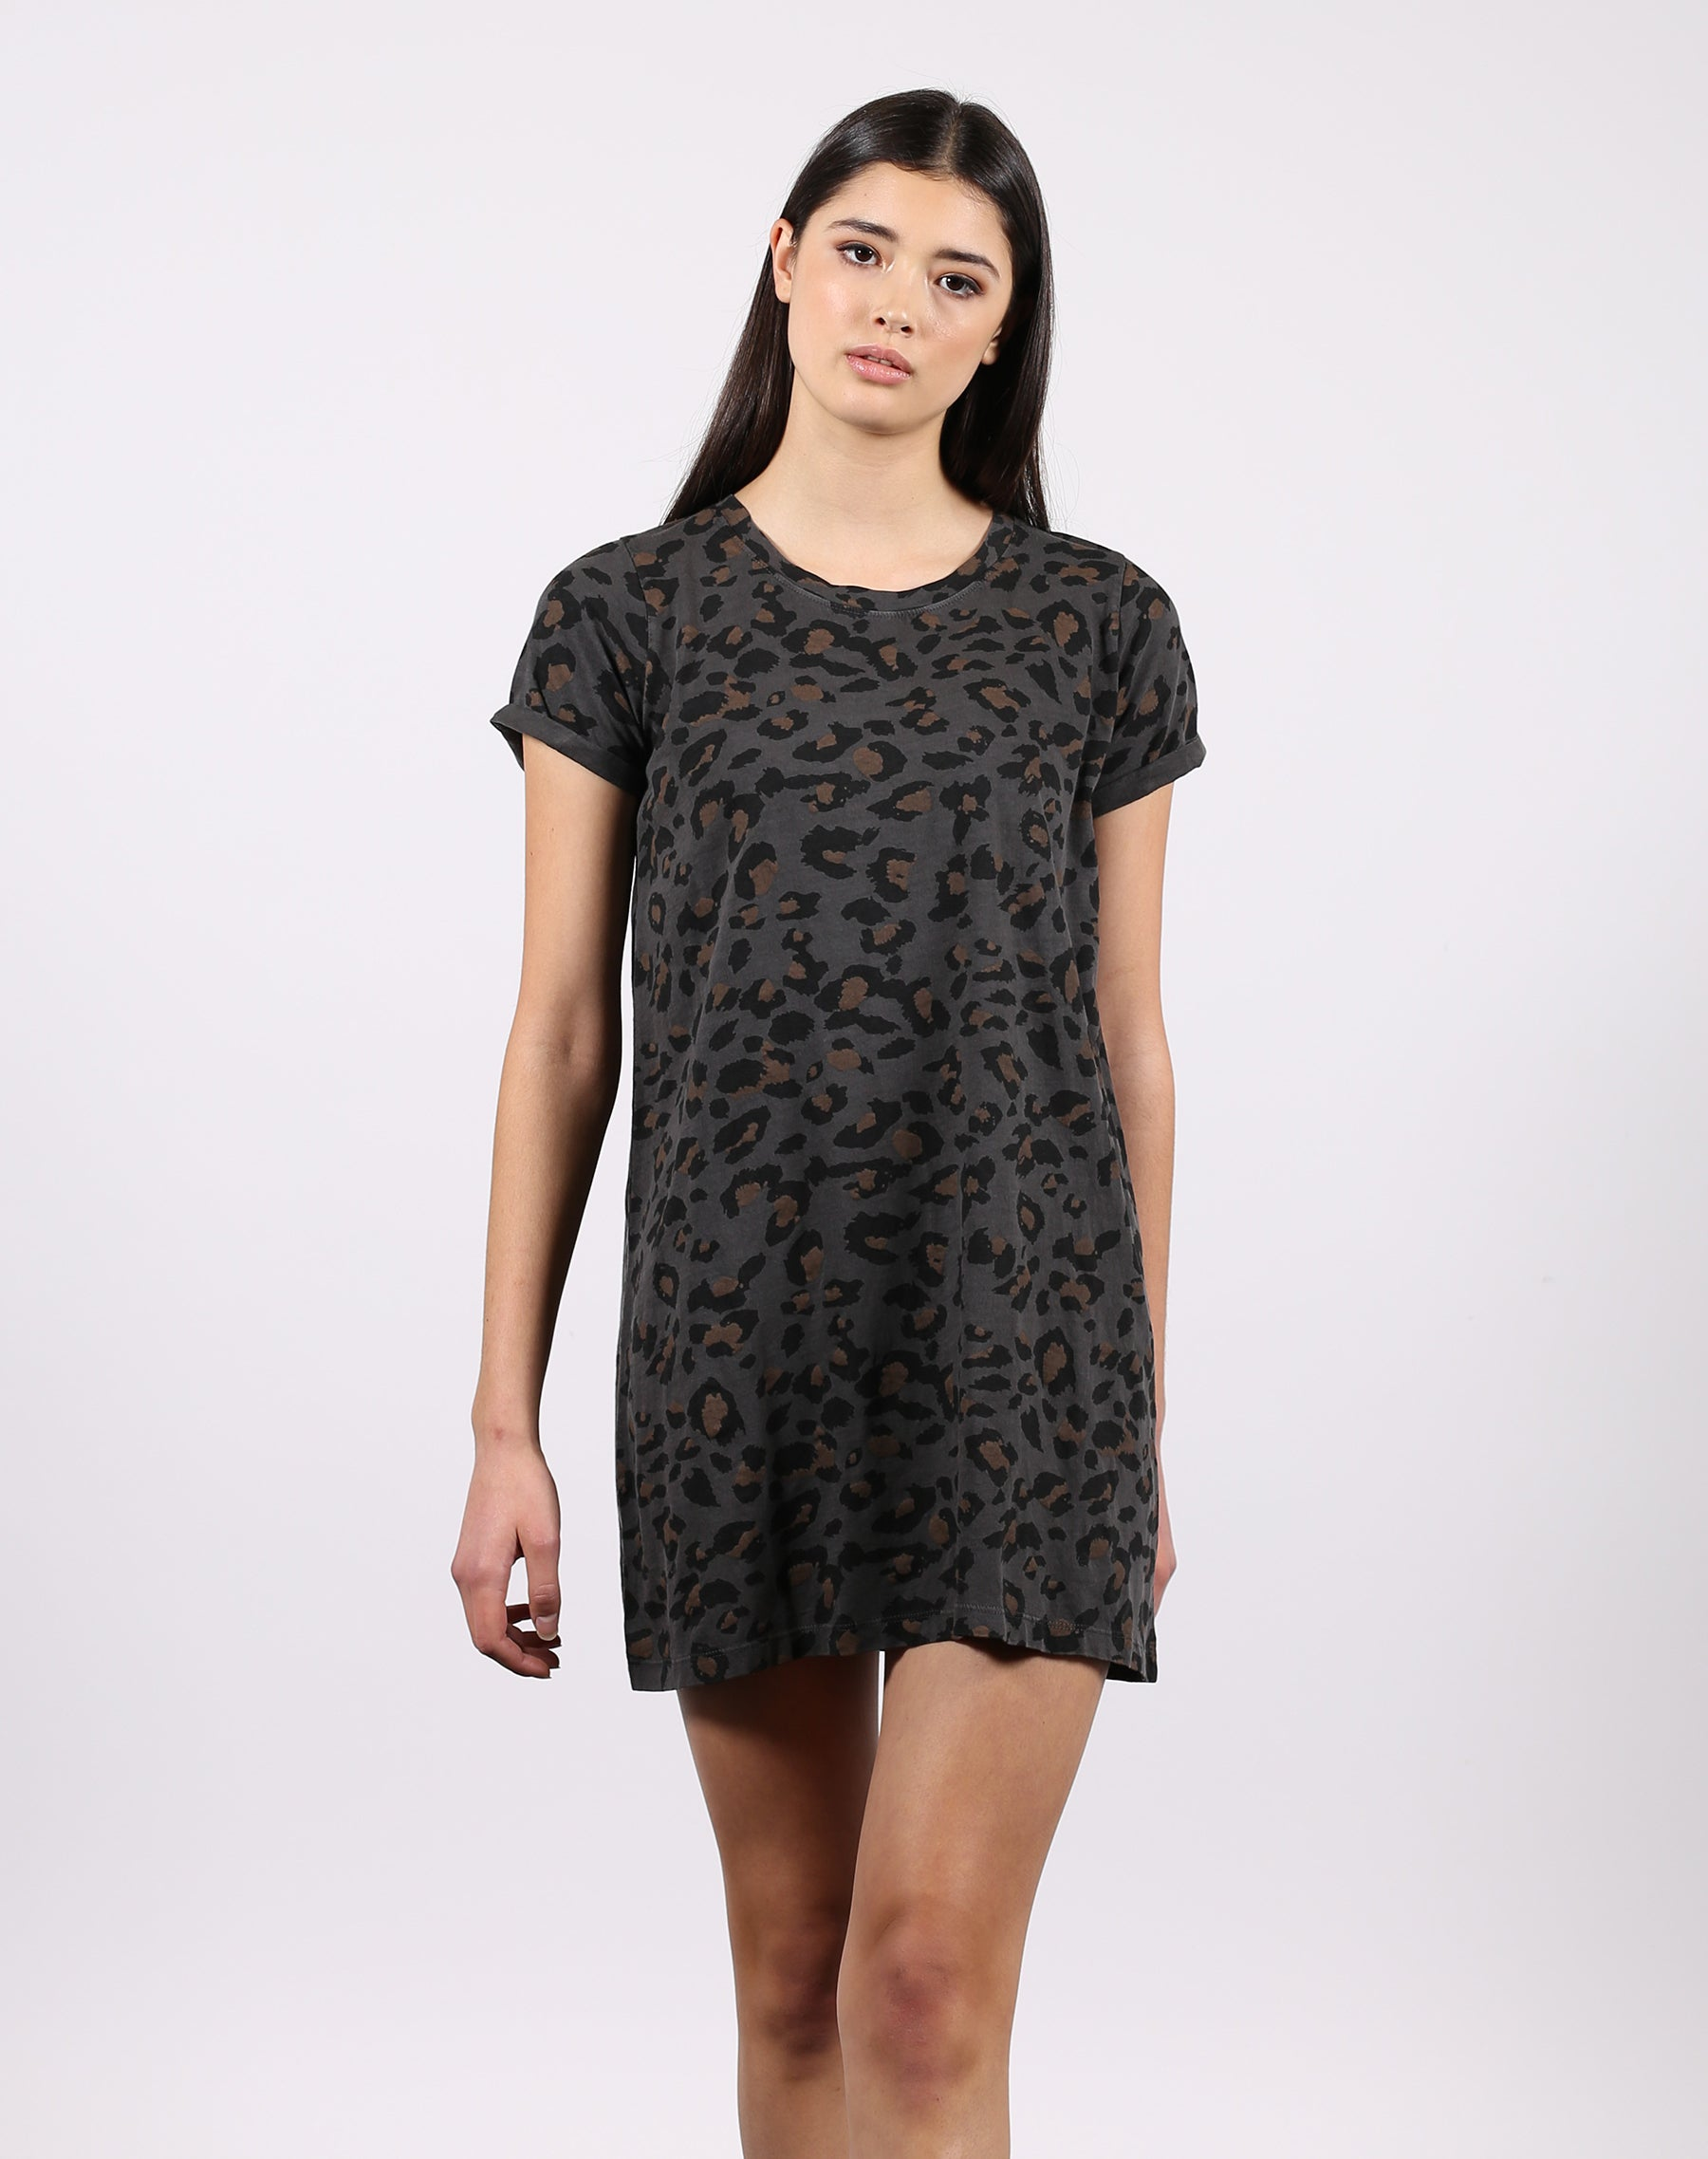 This is the front of the leopard slate t-shirt dress from the 1981 collection by Brunette the Label